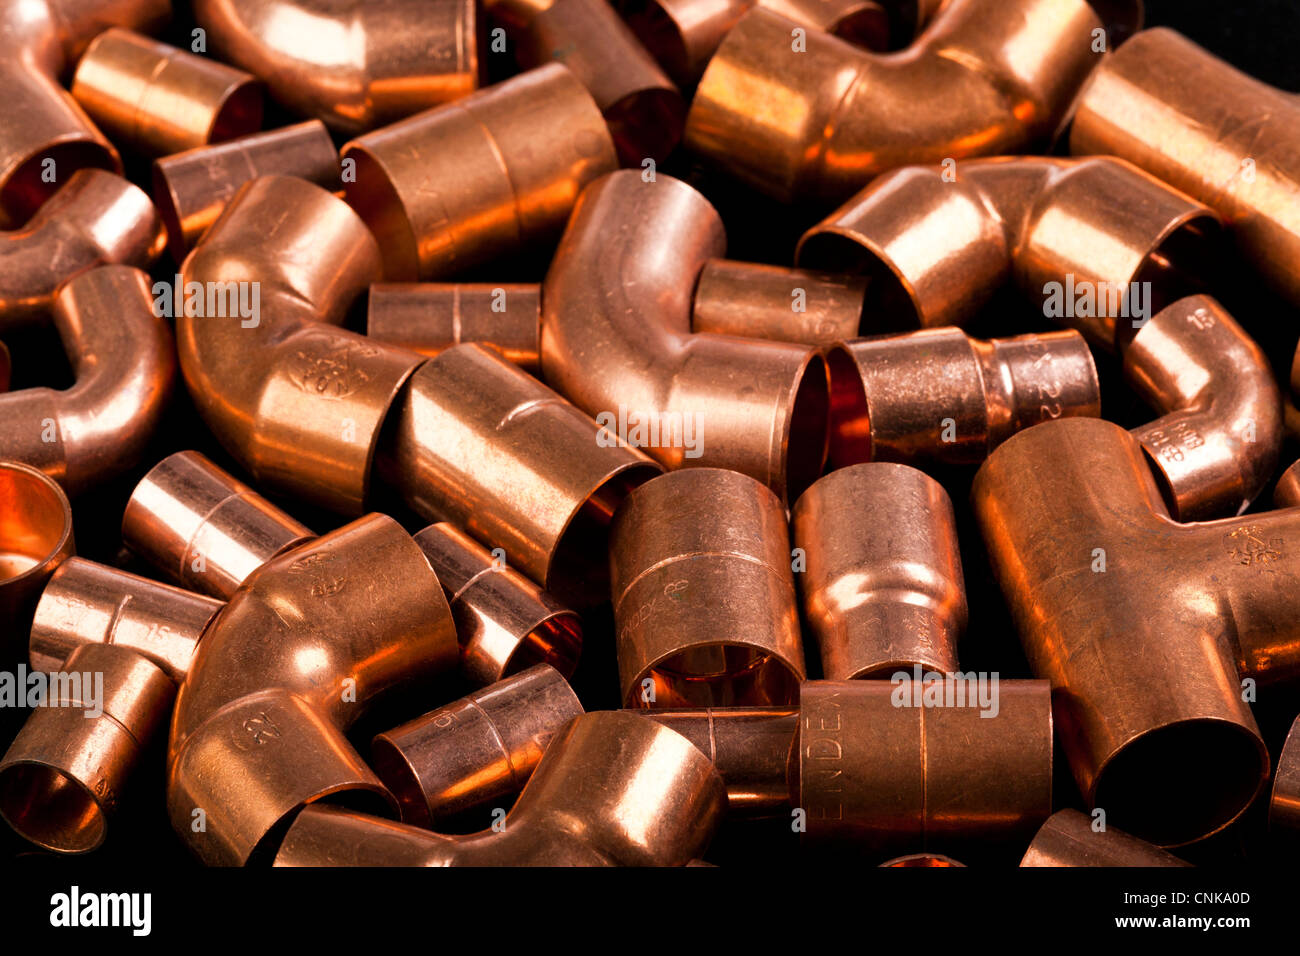 copper metal pipe connectors / fittings - Stock Image